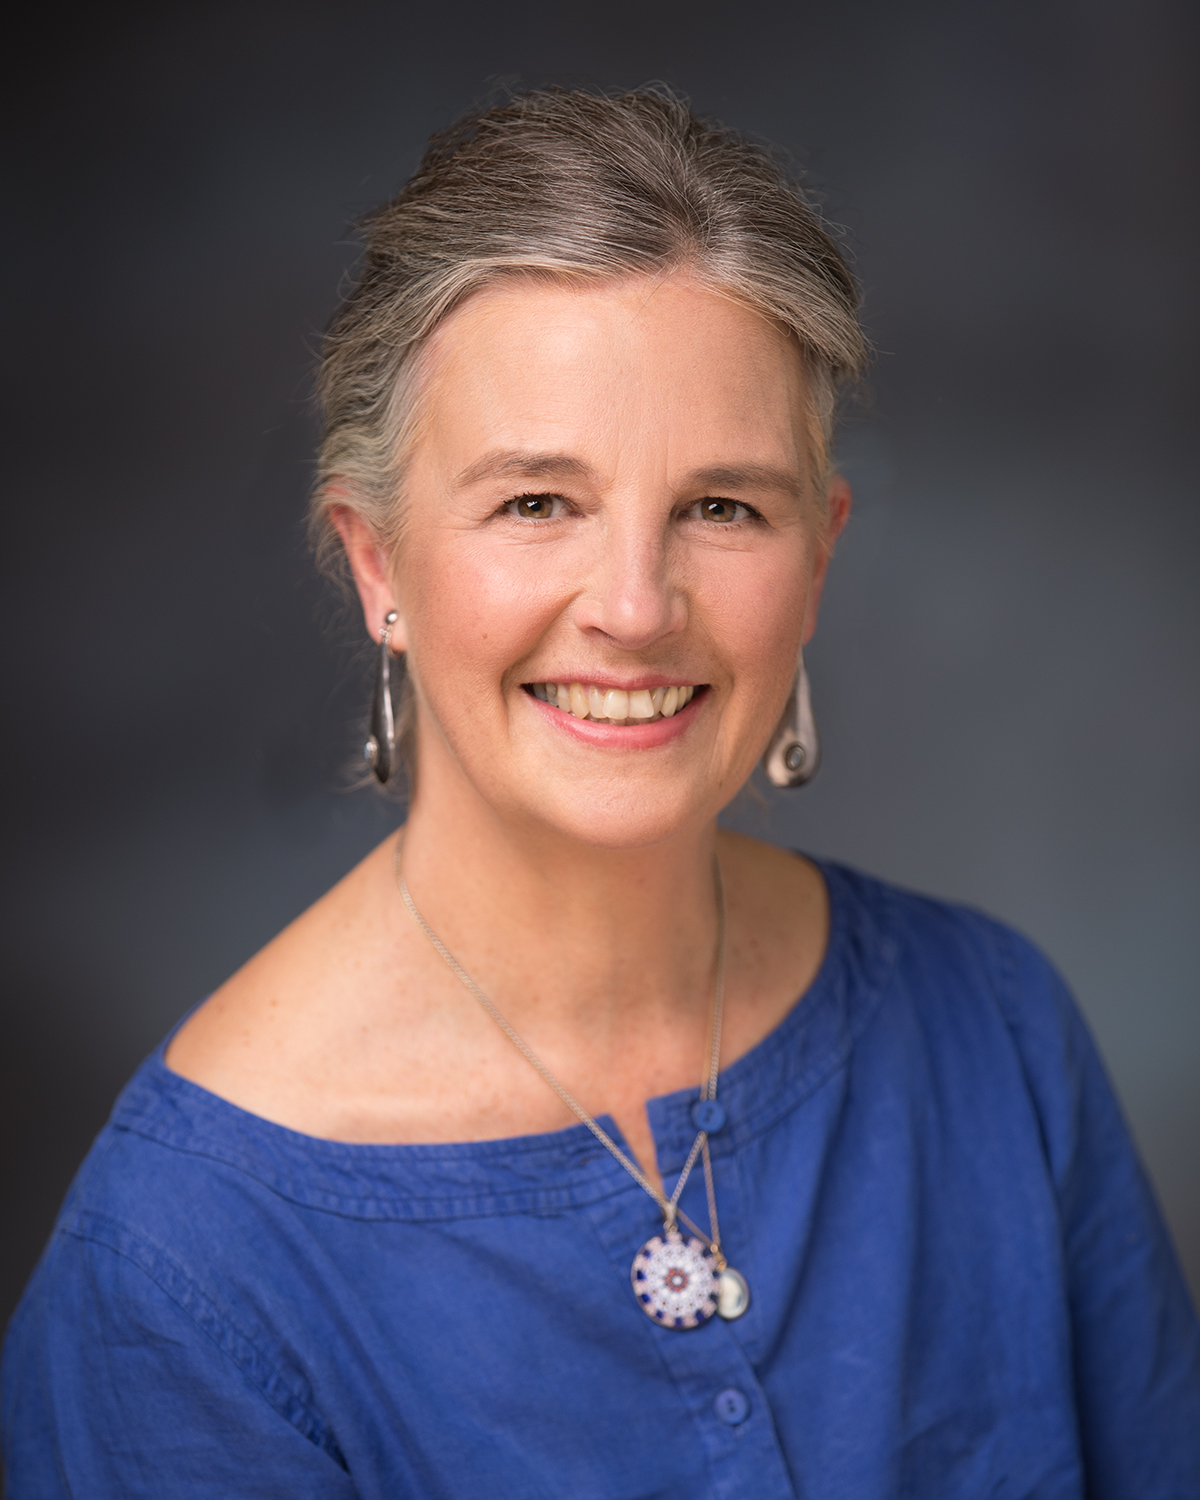 M. Catherine Schaefer, CNM, ND, MSN - Nurse-Midwife, Obstetrics and Gynecology, Portland, OR